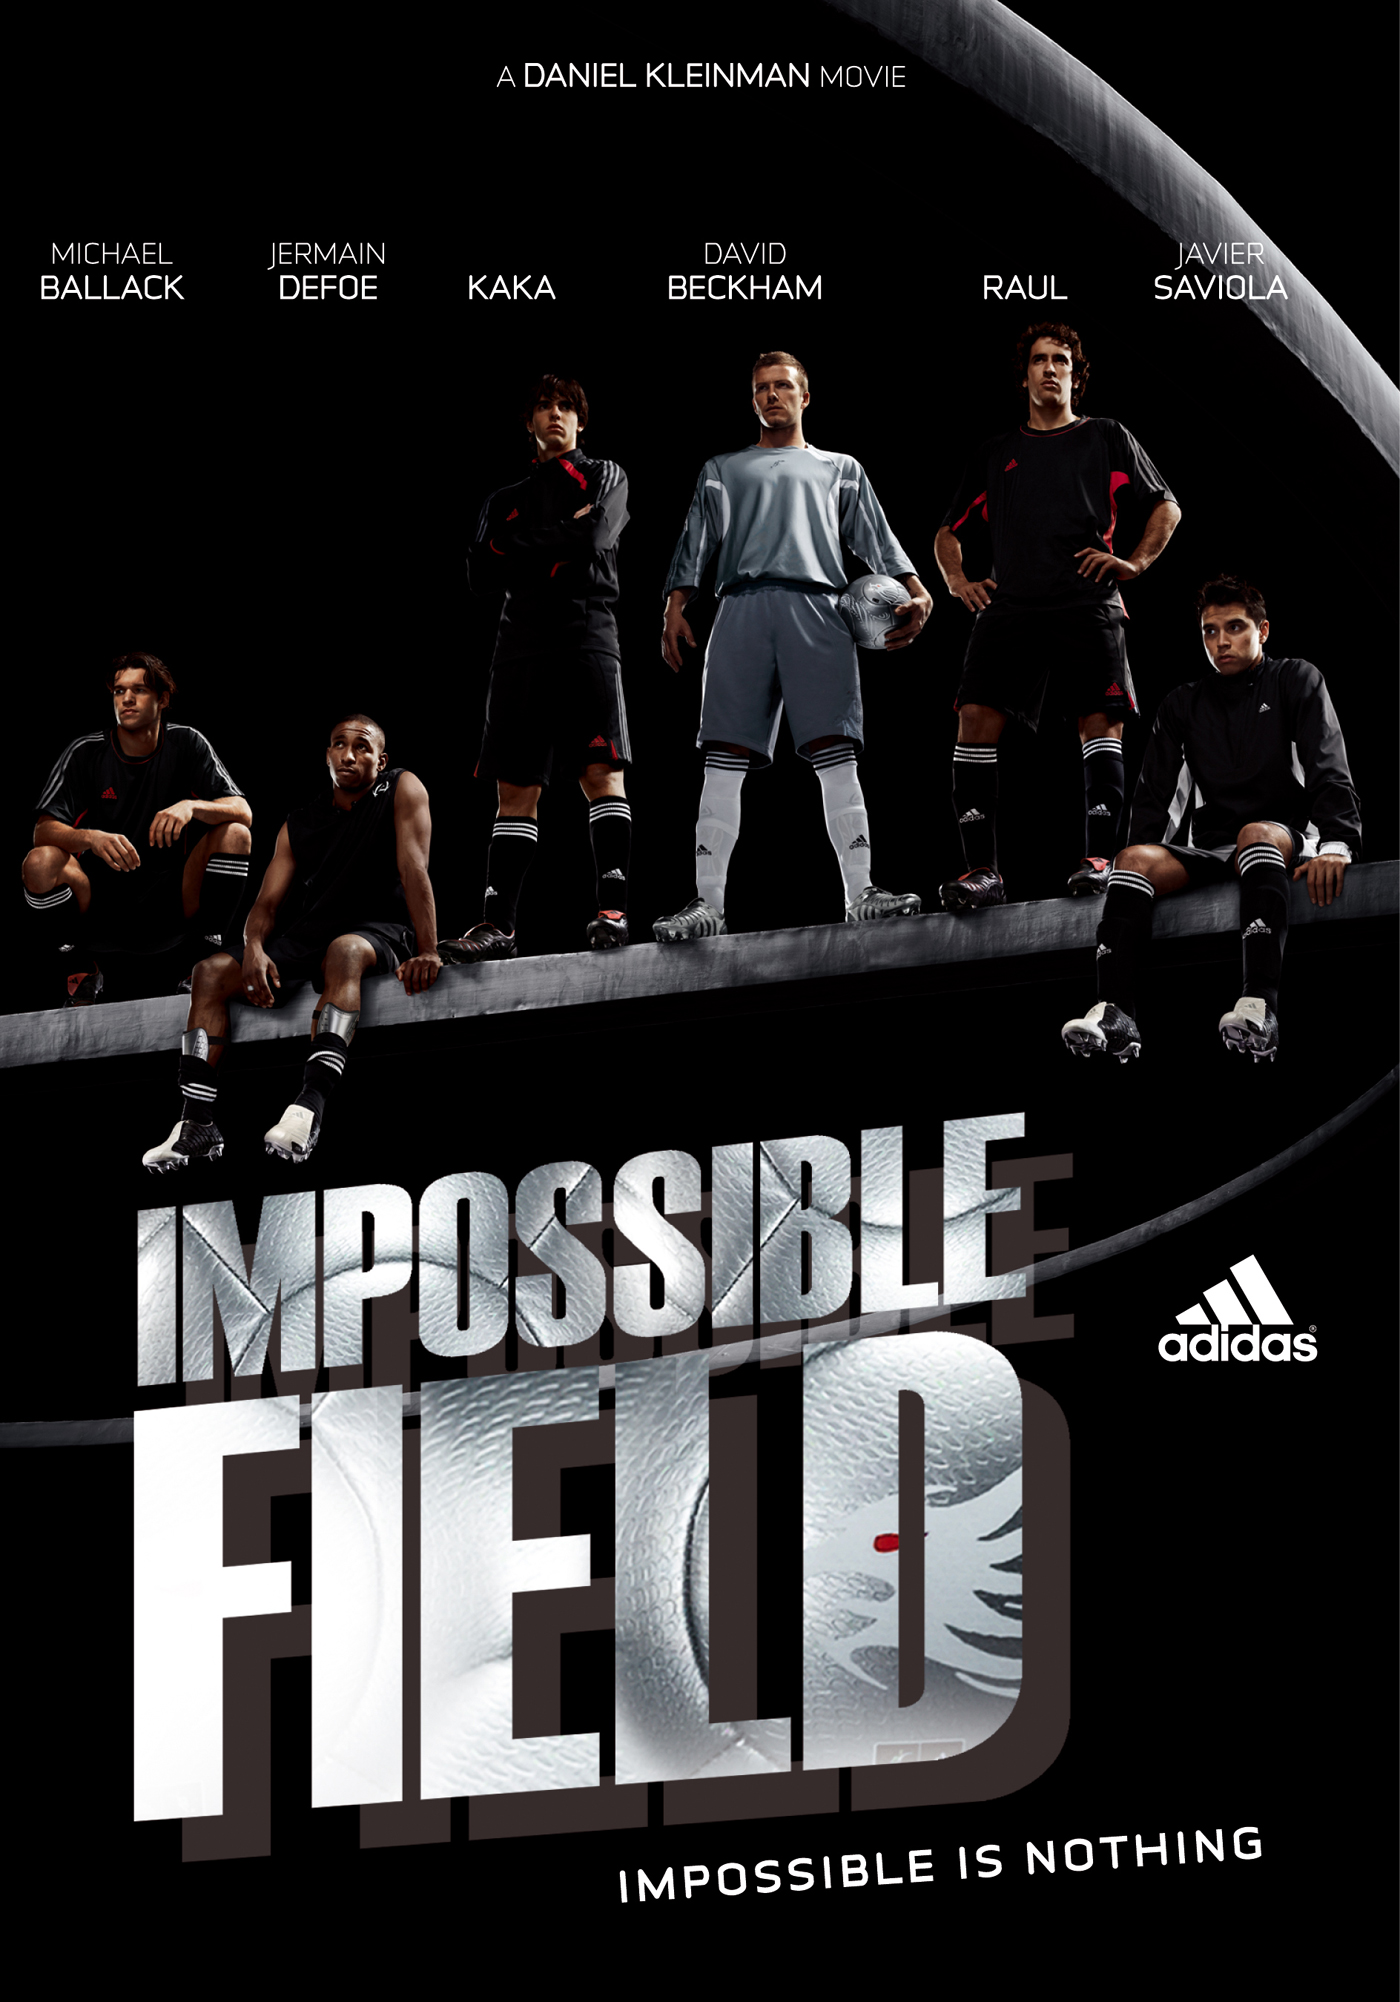 Adidas Creates Impossible Field